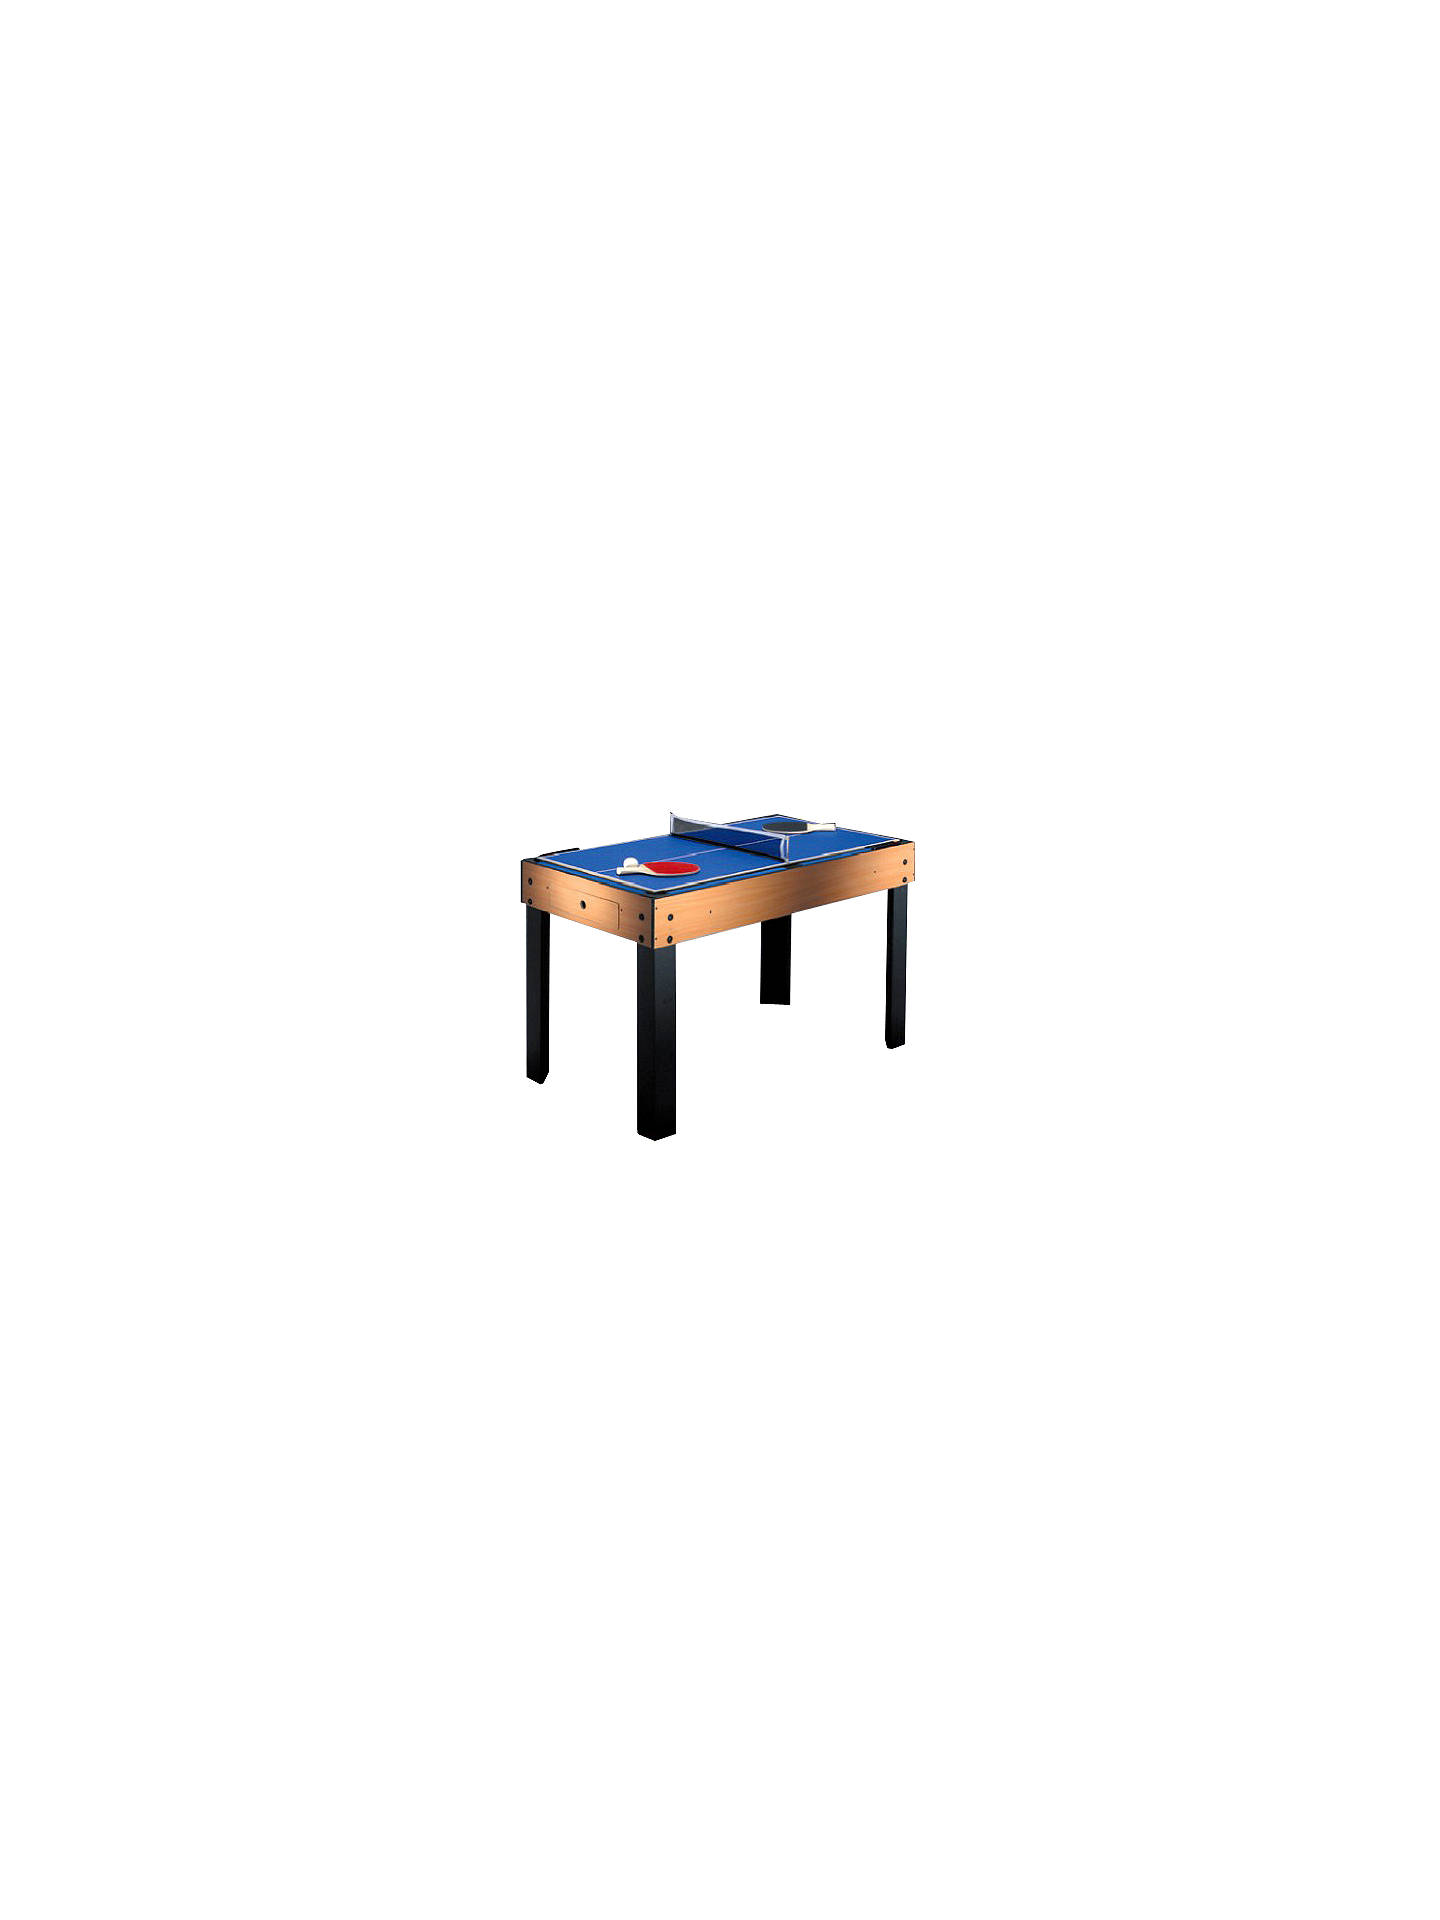 Phenomenal Bce 4 In 1 Games Table At John Lewis Partners Home Interior And Landscaping Elinuenasavecom